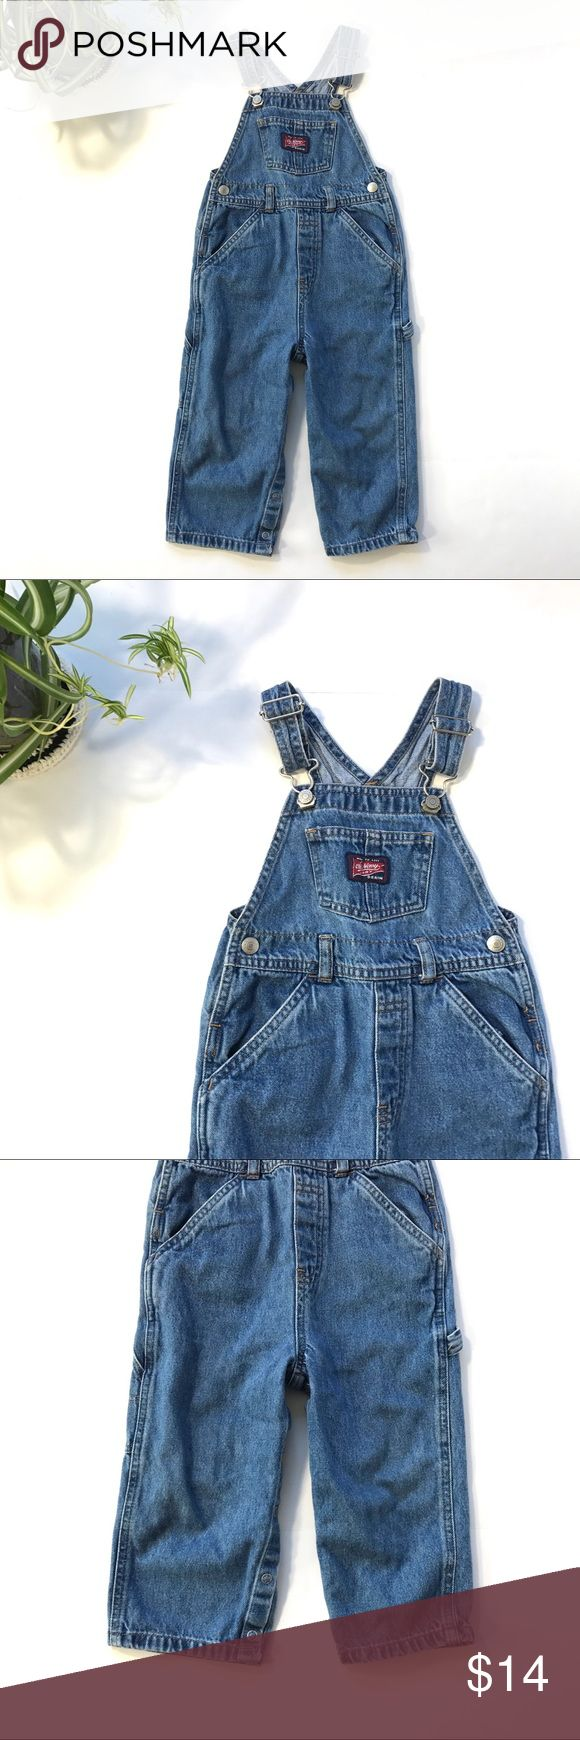 Old Navy Denim blue jean toddler overalls pant 2T This is a pair of Old Navy toddler overalls in classic blue denim. They are size 2T.  These overalls are in pre-owned condition with light wear. Please take a look through the photos to see if this item is right for you! Old Navy Bottoms Overalls